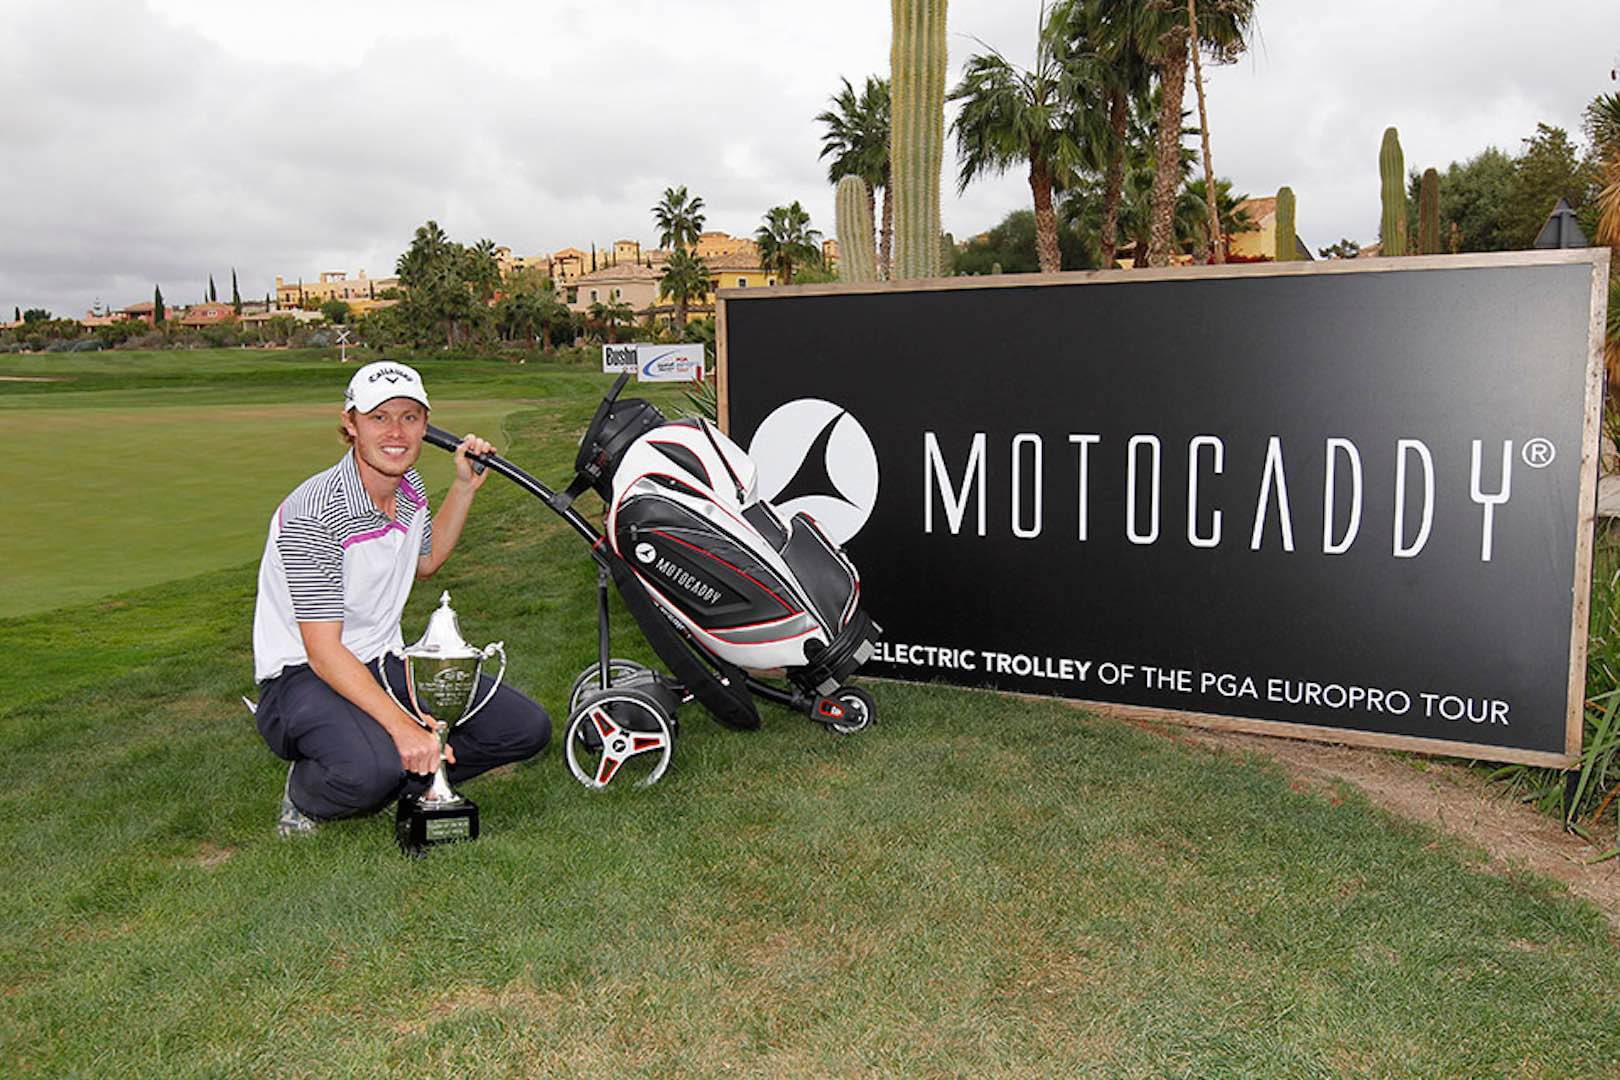 Motocaddy upgrades EuroPro Prize package